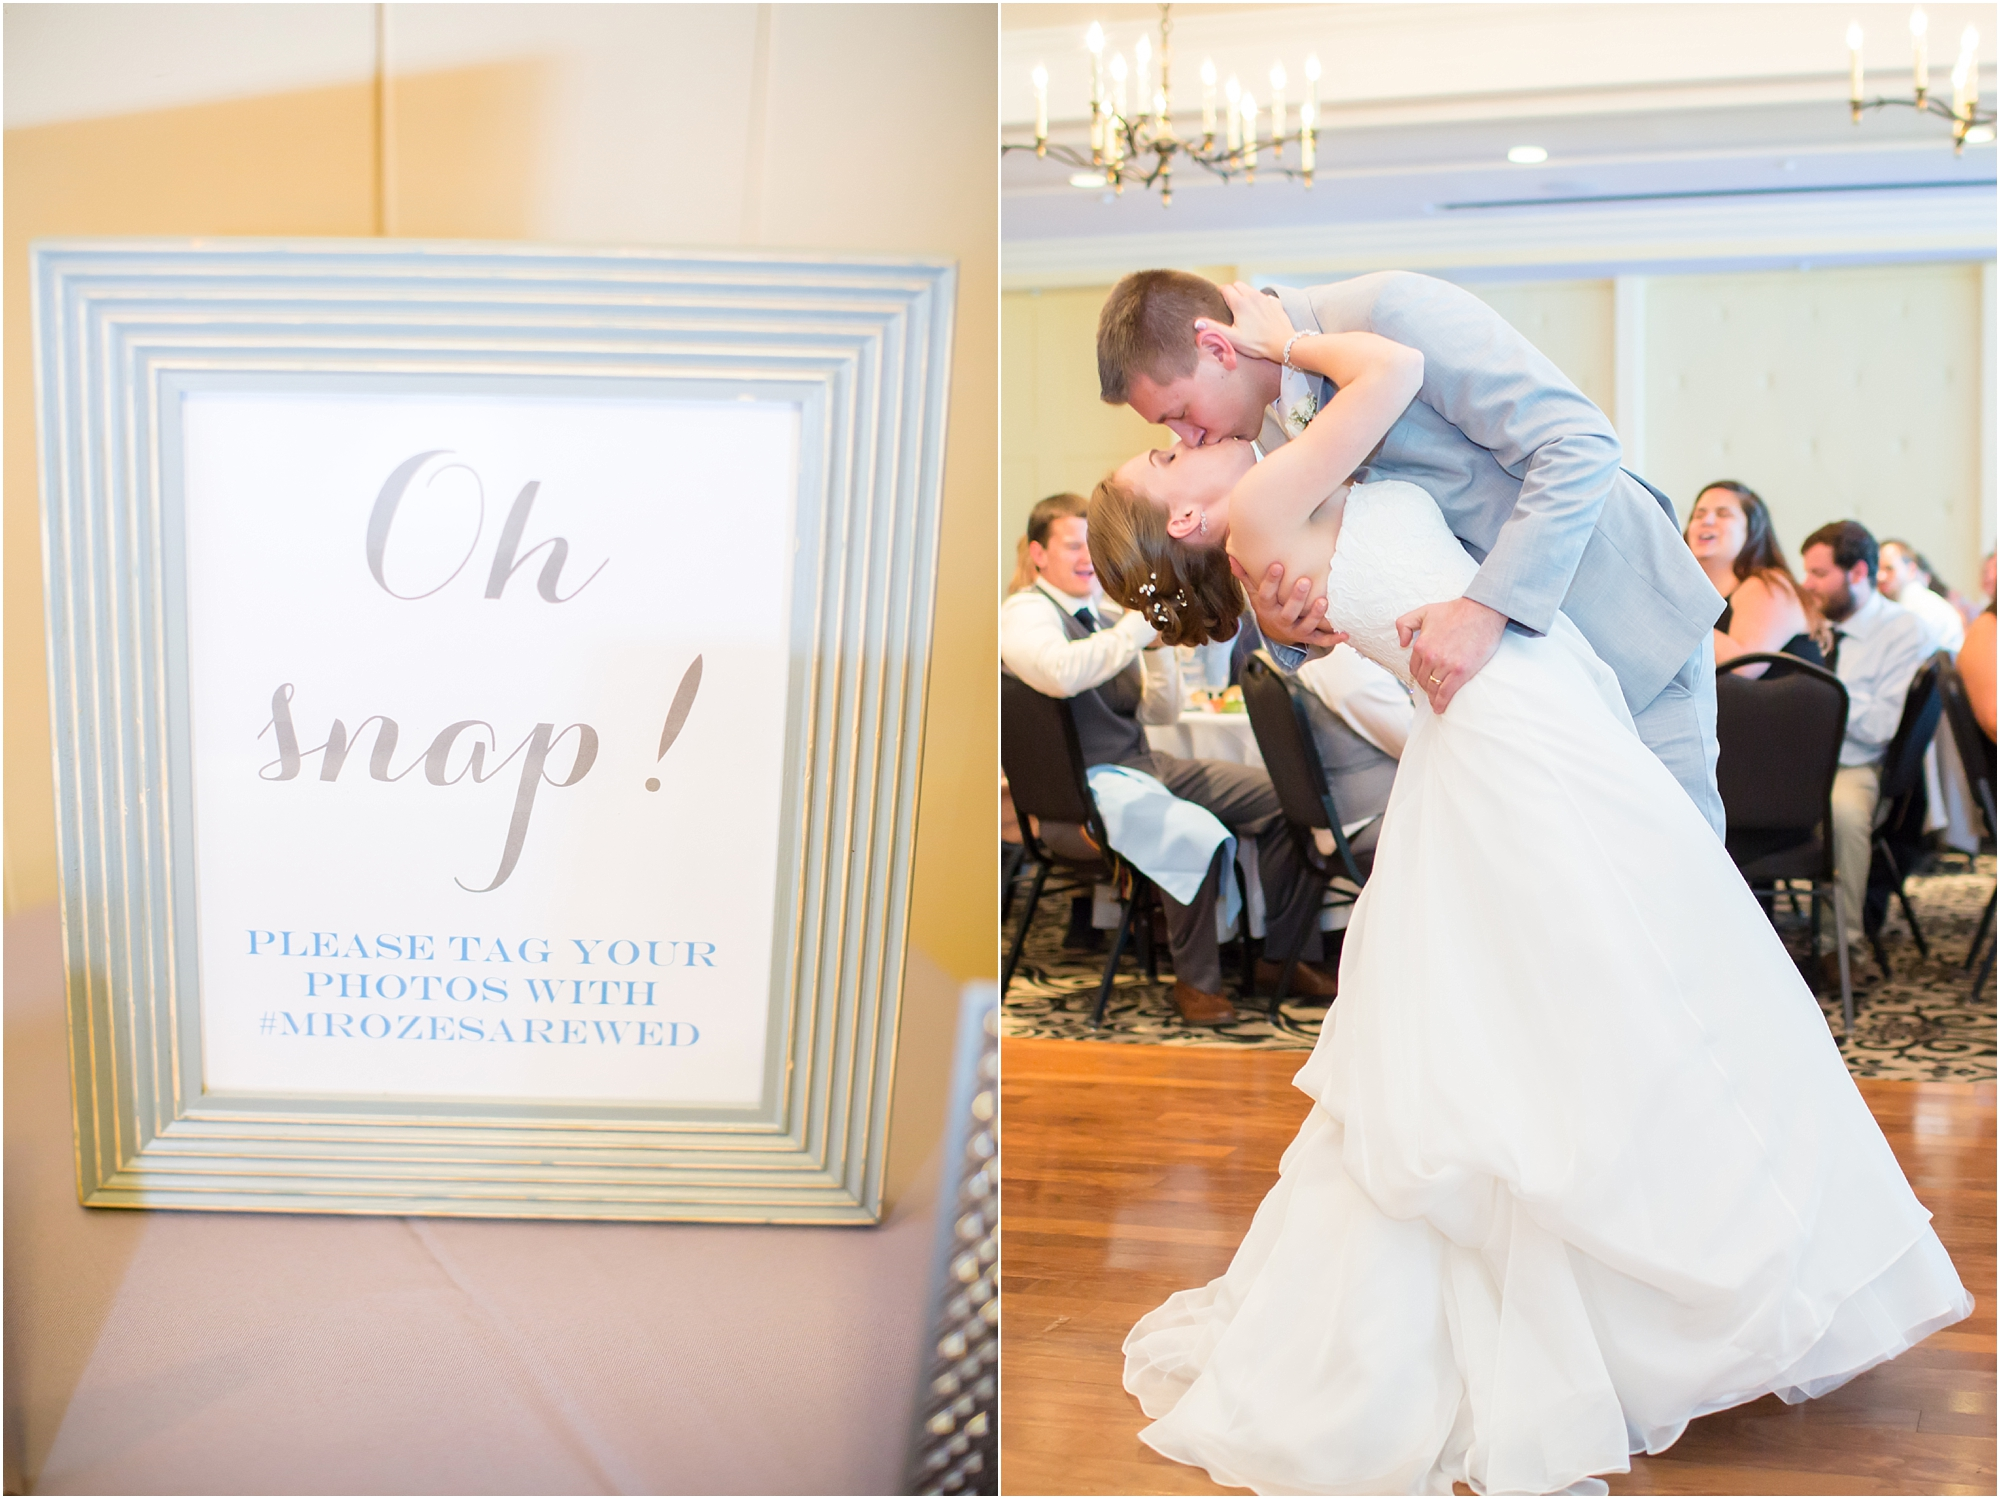 Mroz 6-Reception-522_anna grace photography top of the bay maryland wedding photographer photo.jpg